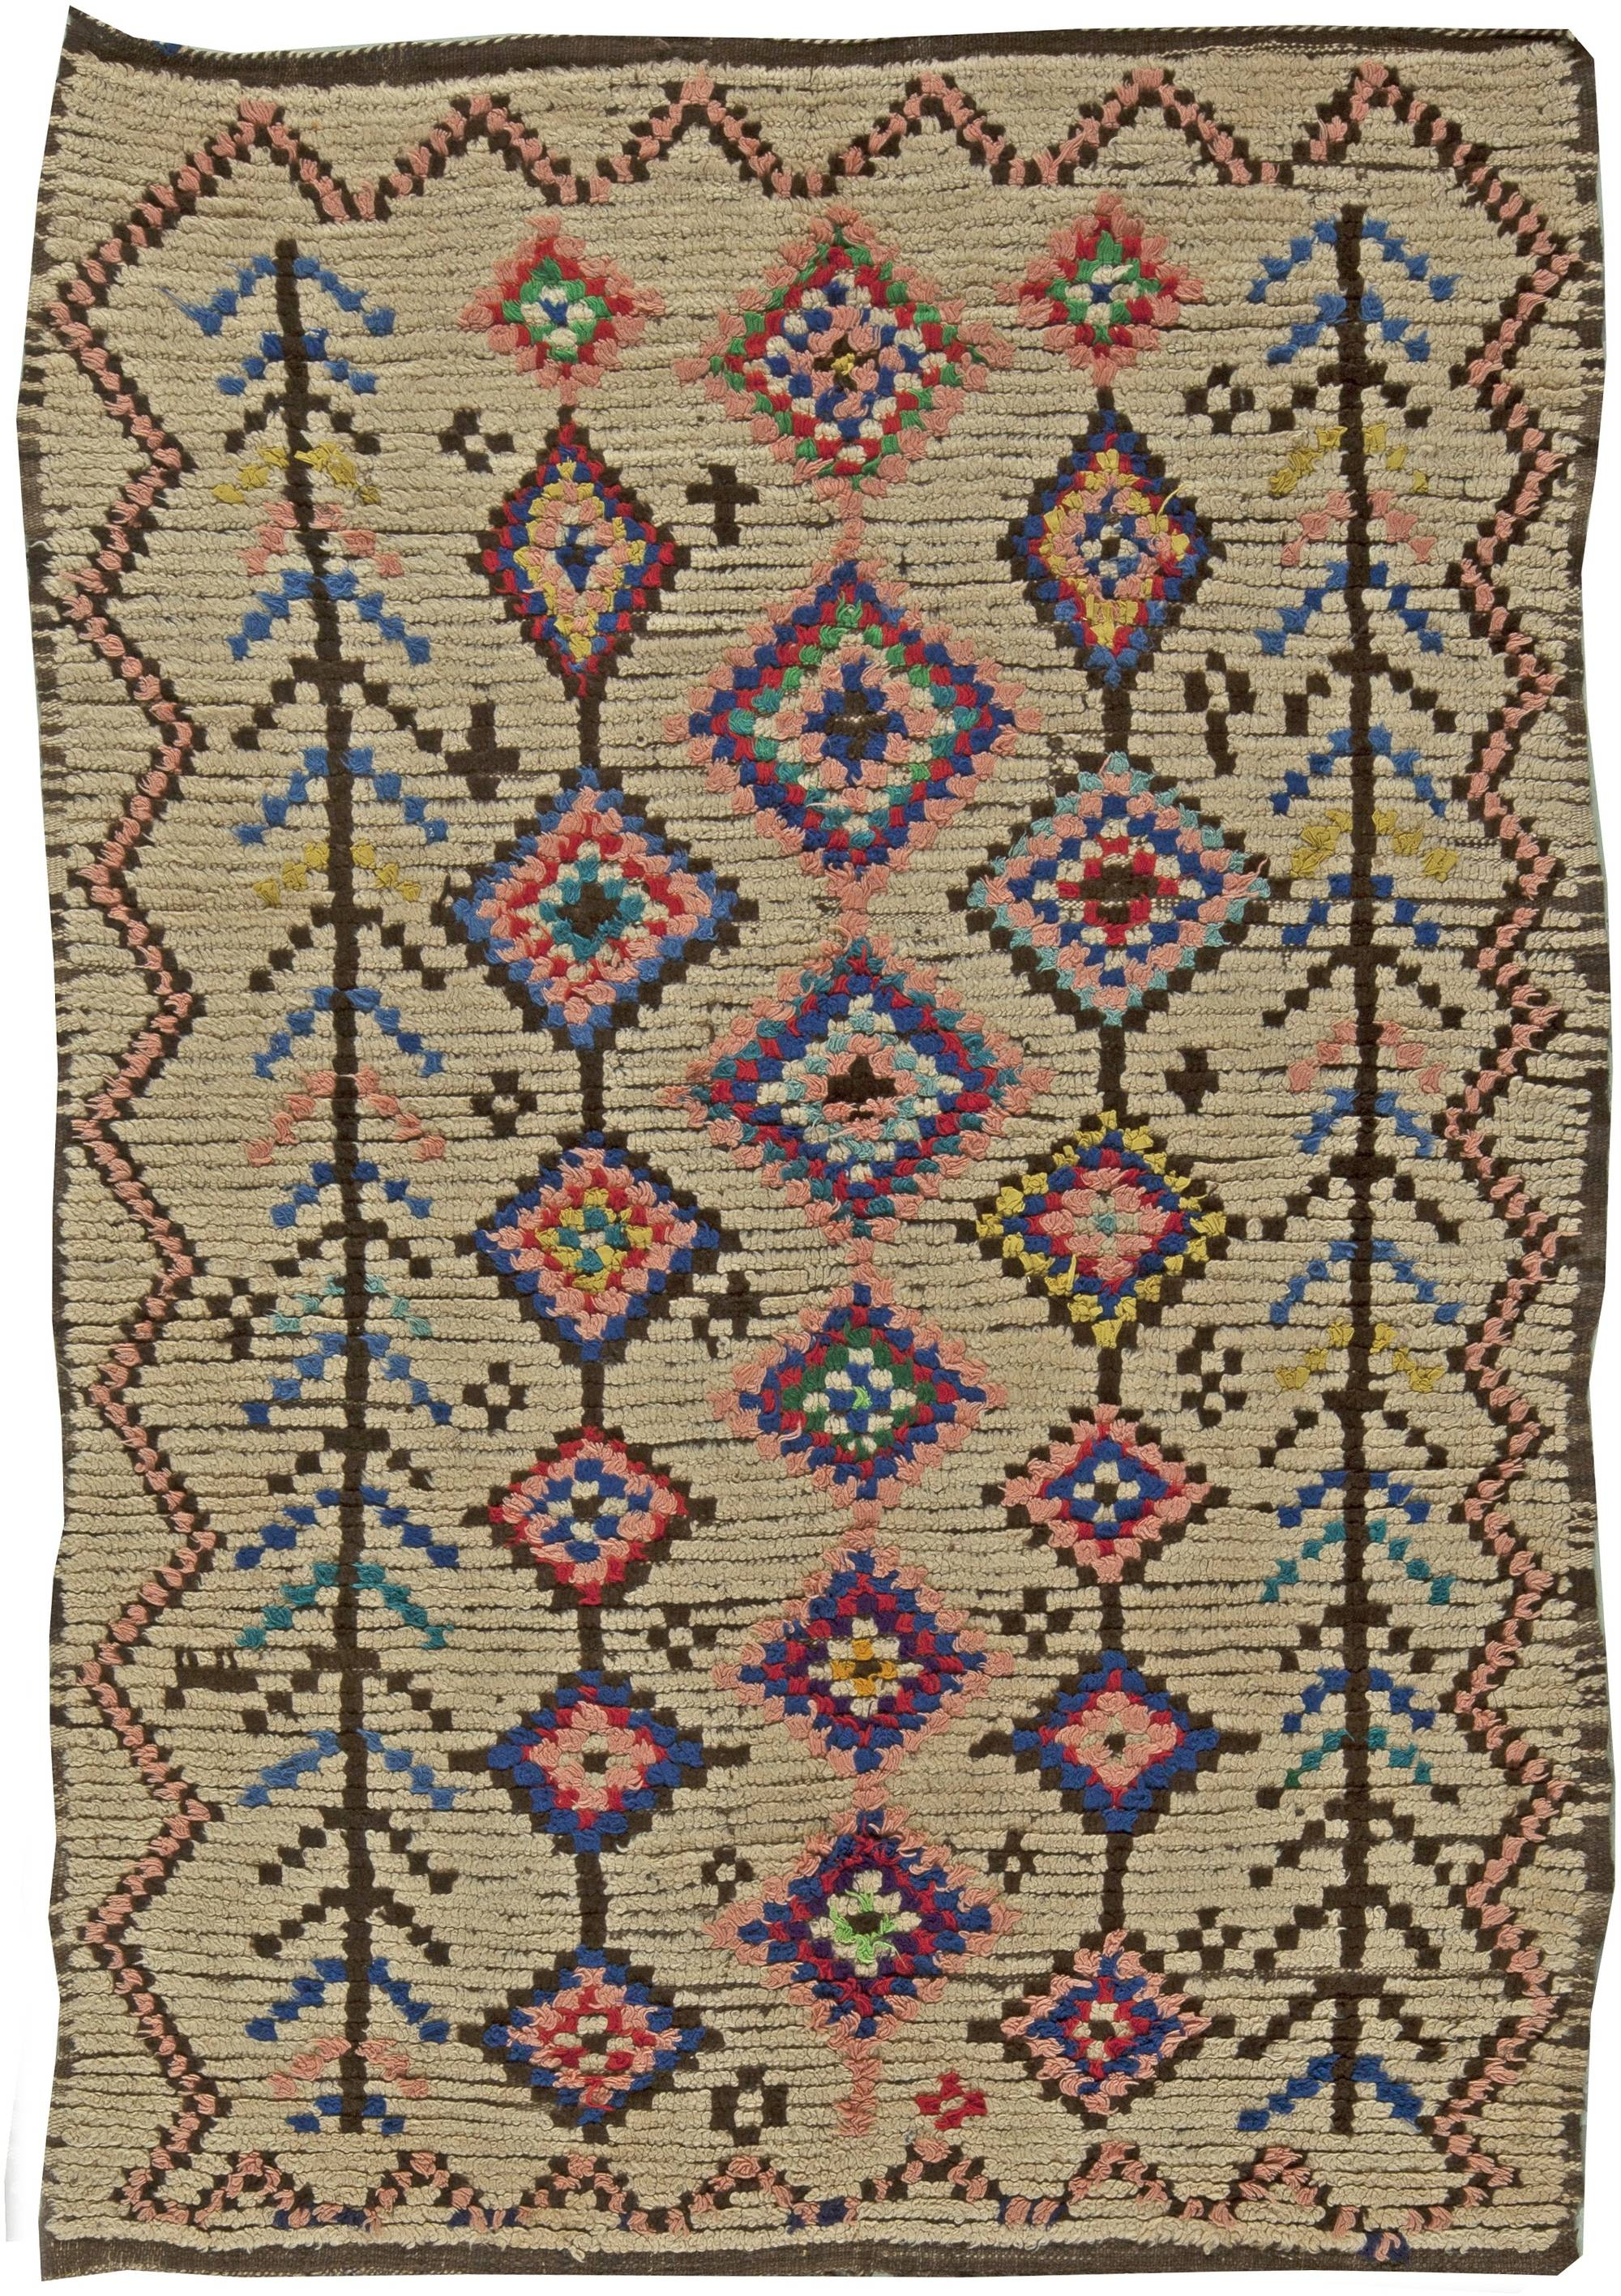 Vintage Moroccan Rug Bb5900 Doris Leslie Blau Pertaining To Moroccan Rugs (Image 12 of 15)